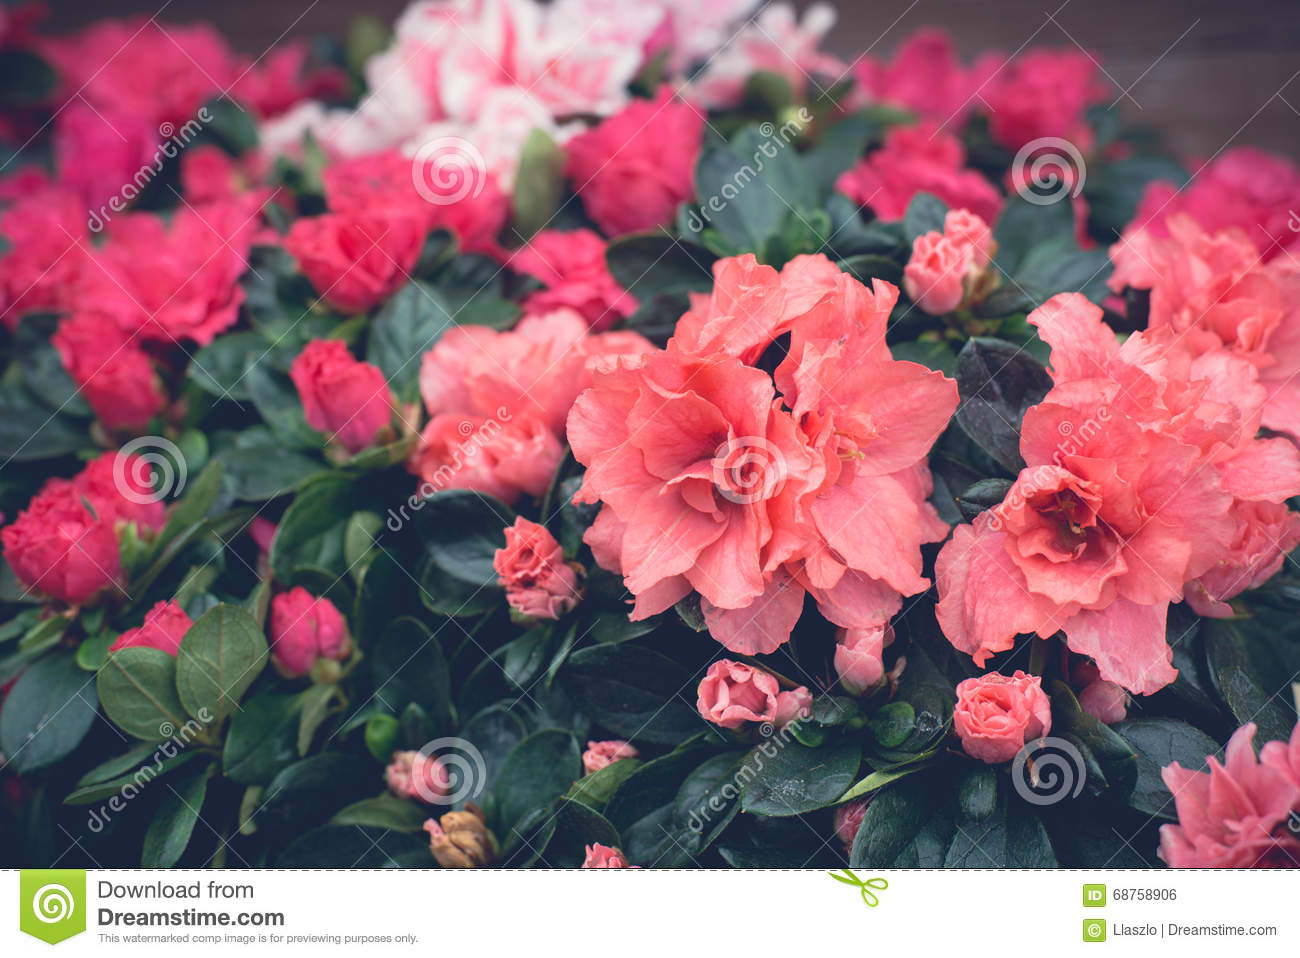 Pink floral wallpaper stock photo image of dark close 68758906 pink floral wallpaper mightylinksfo